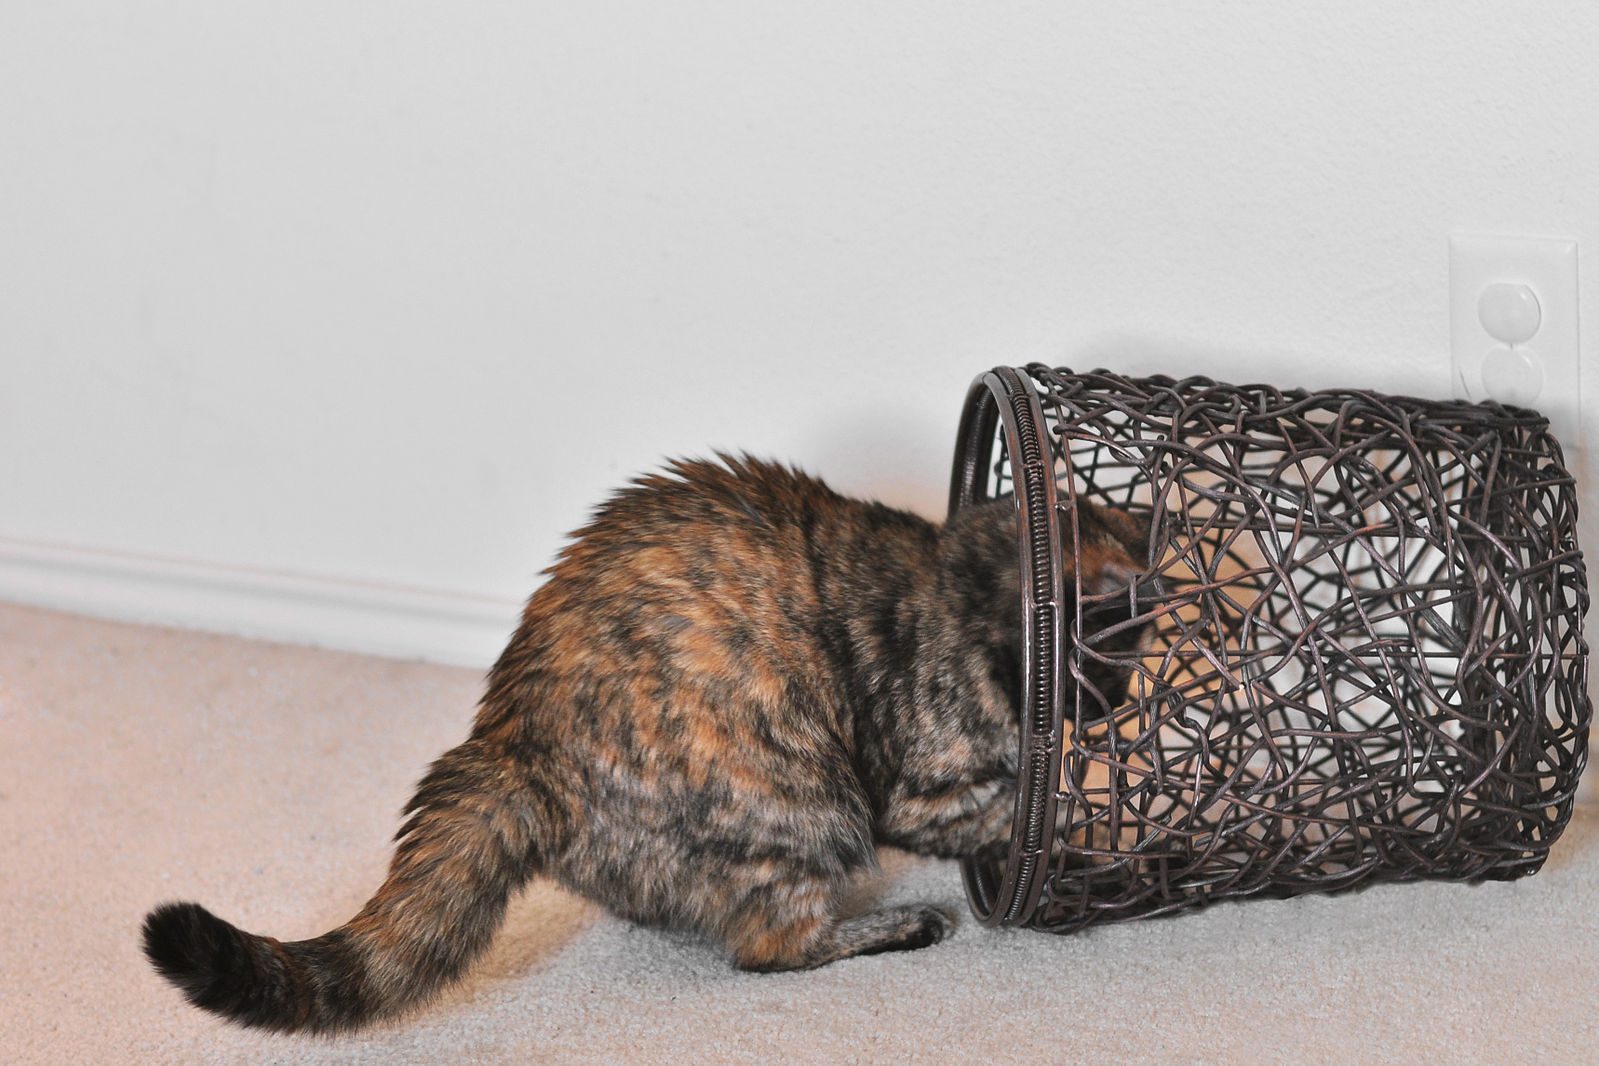 1599px-Abby_playing_in_basket.jpg